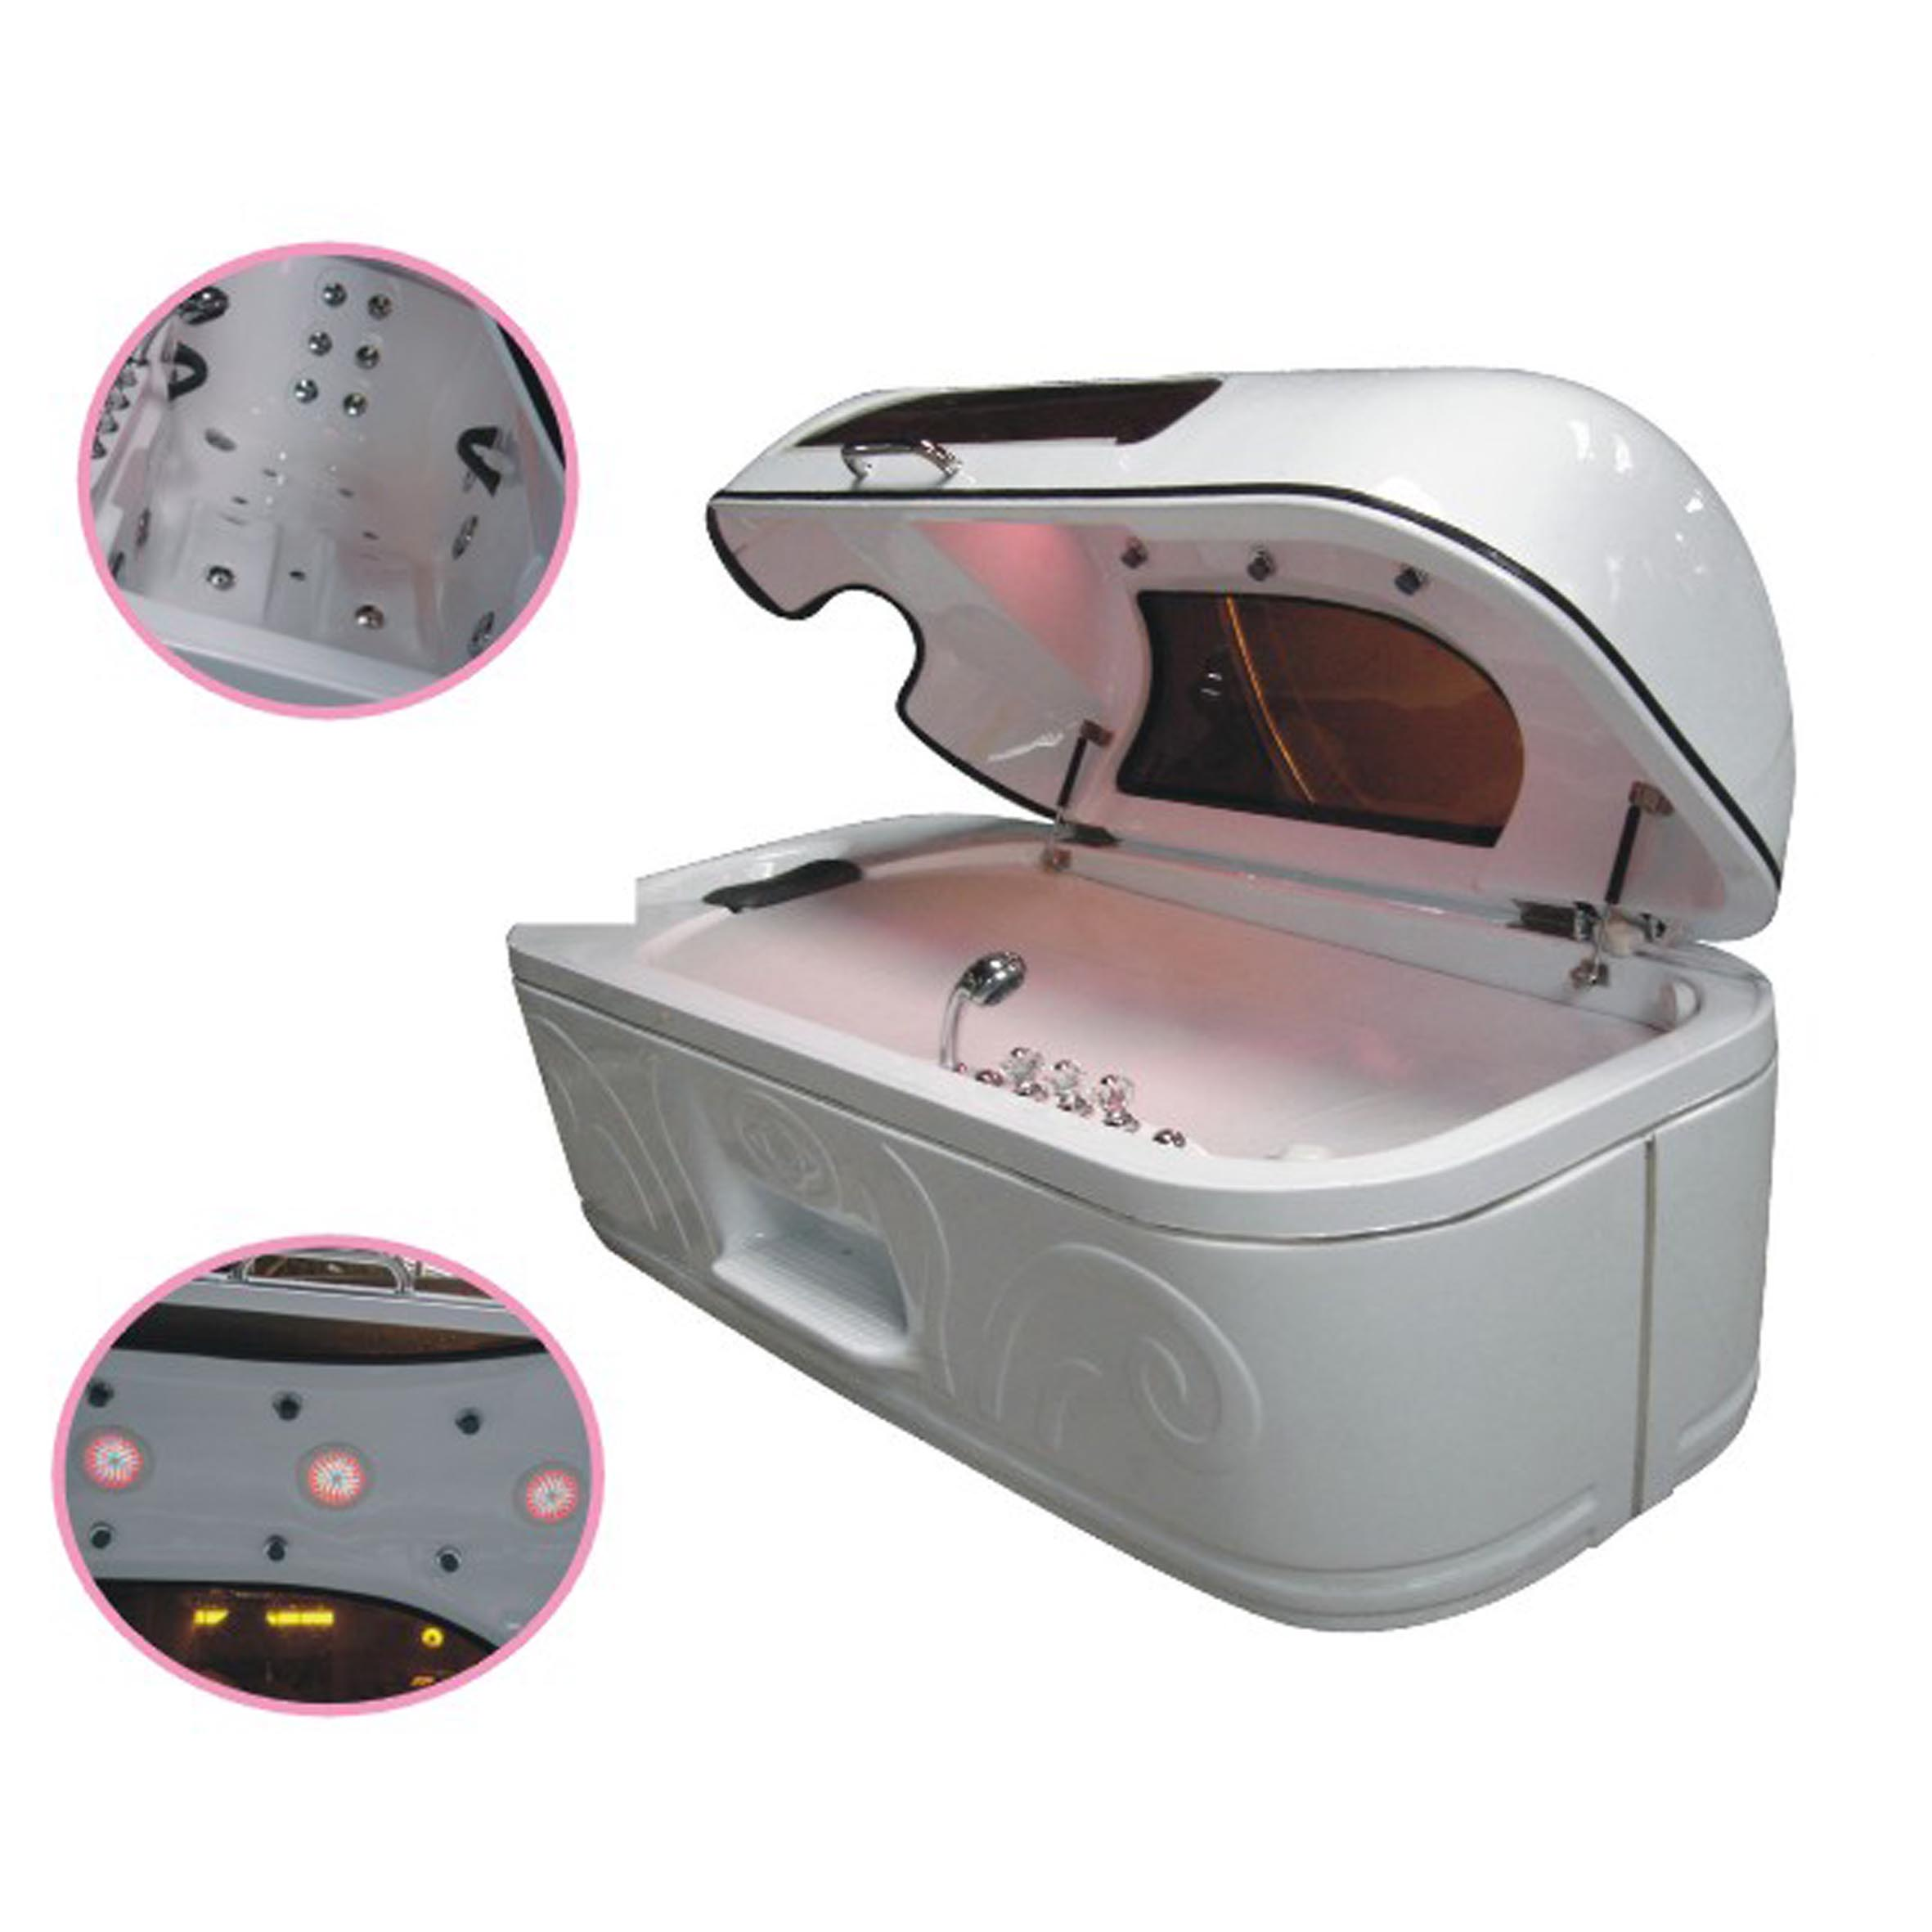 Beauty spa equipment images for Accessories for beauty salon